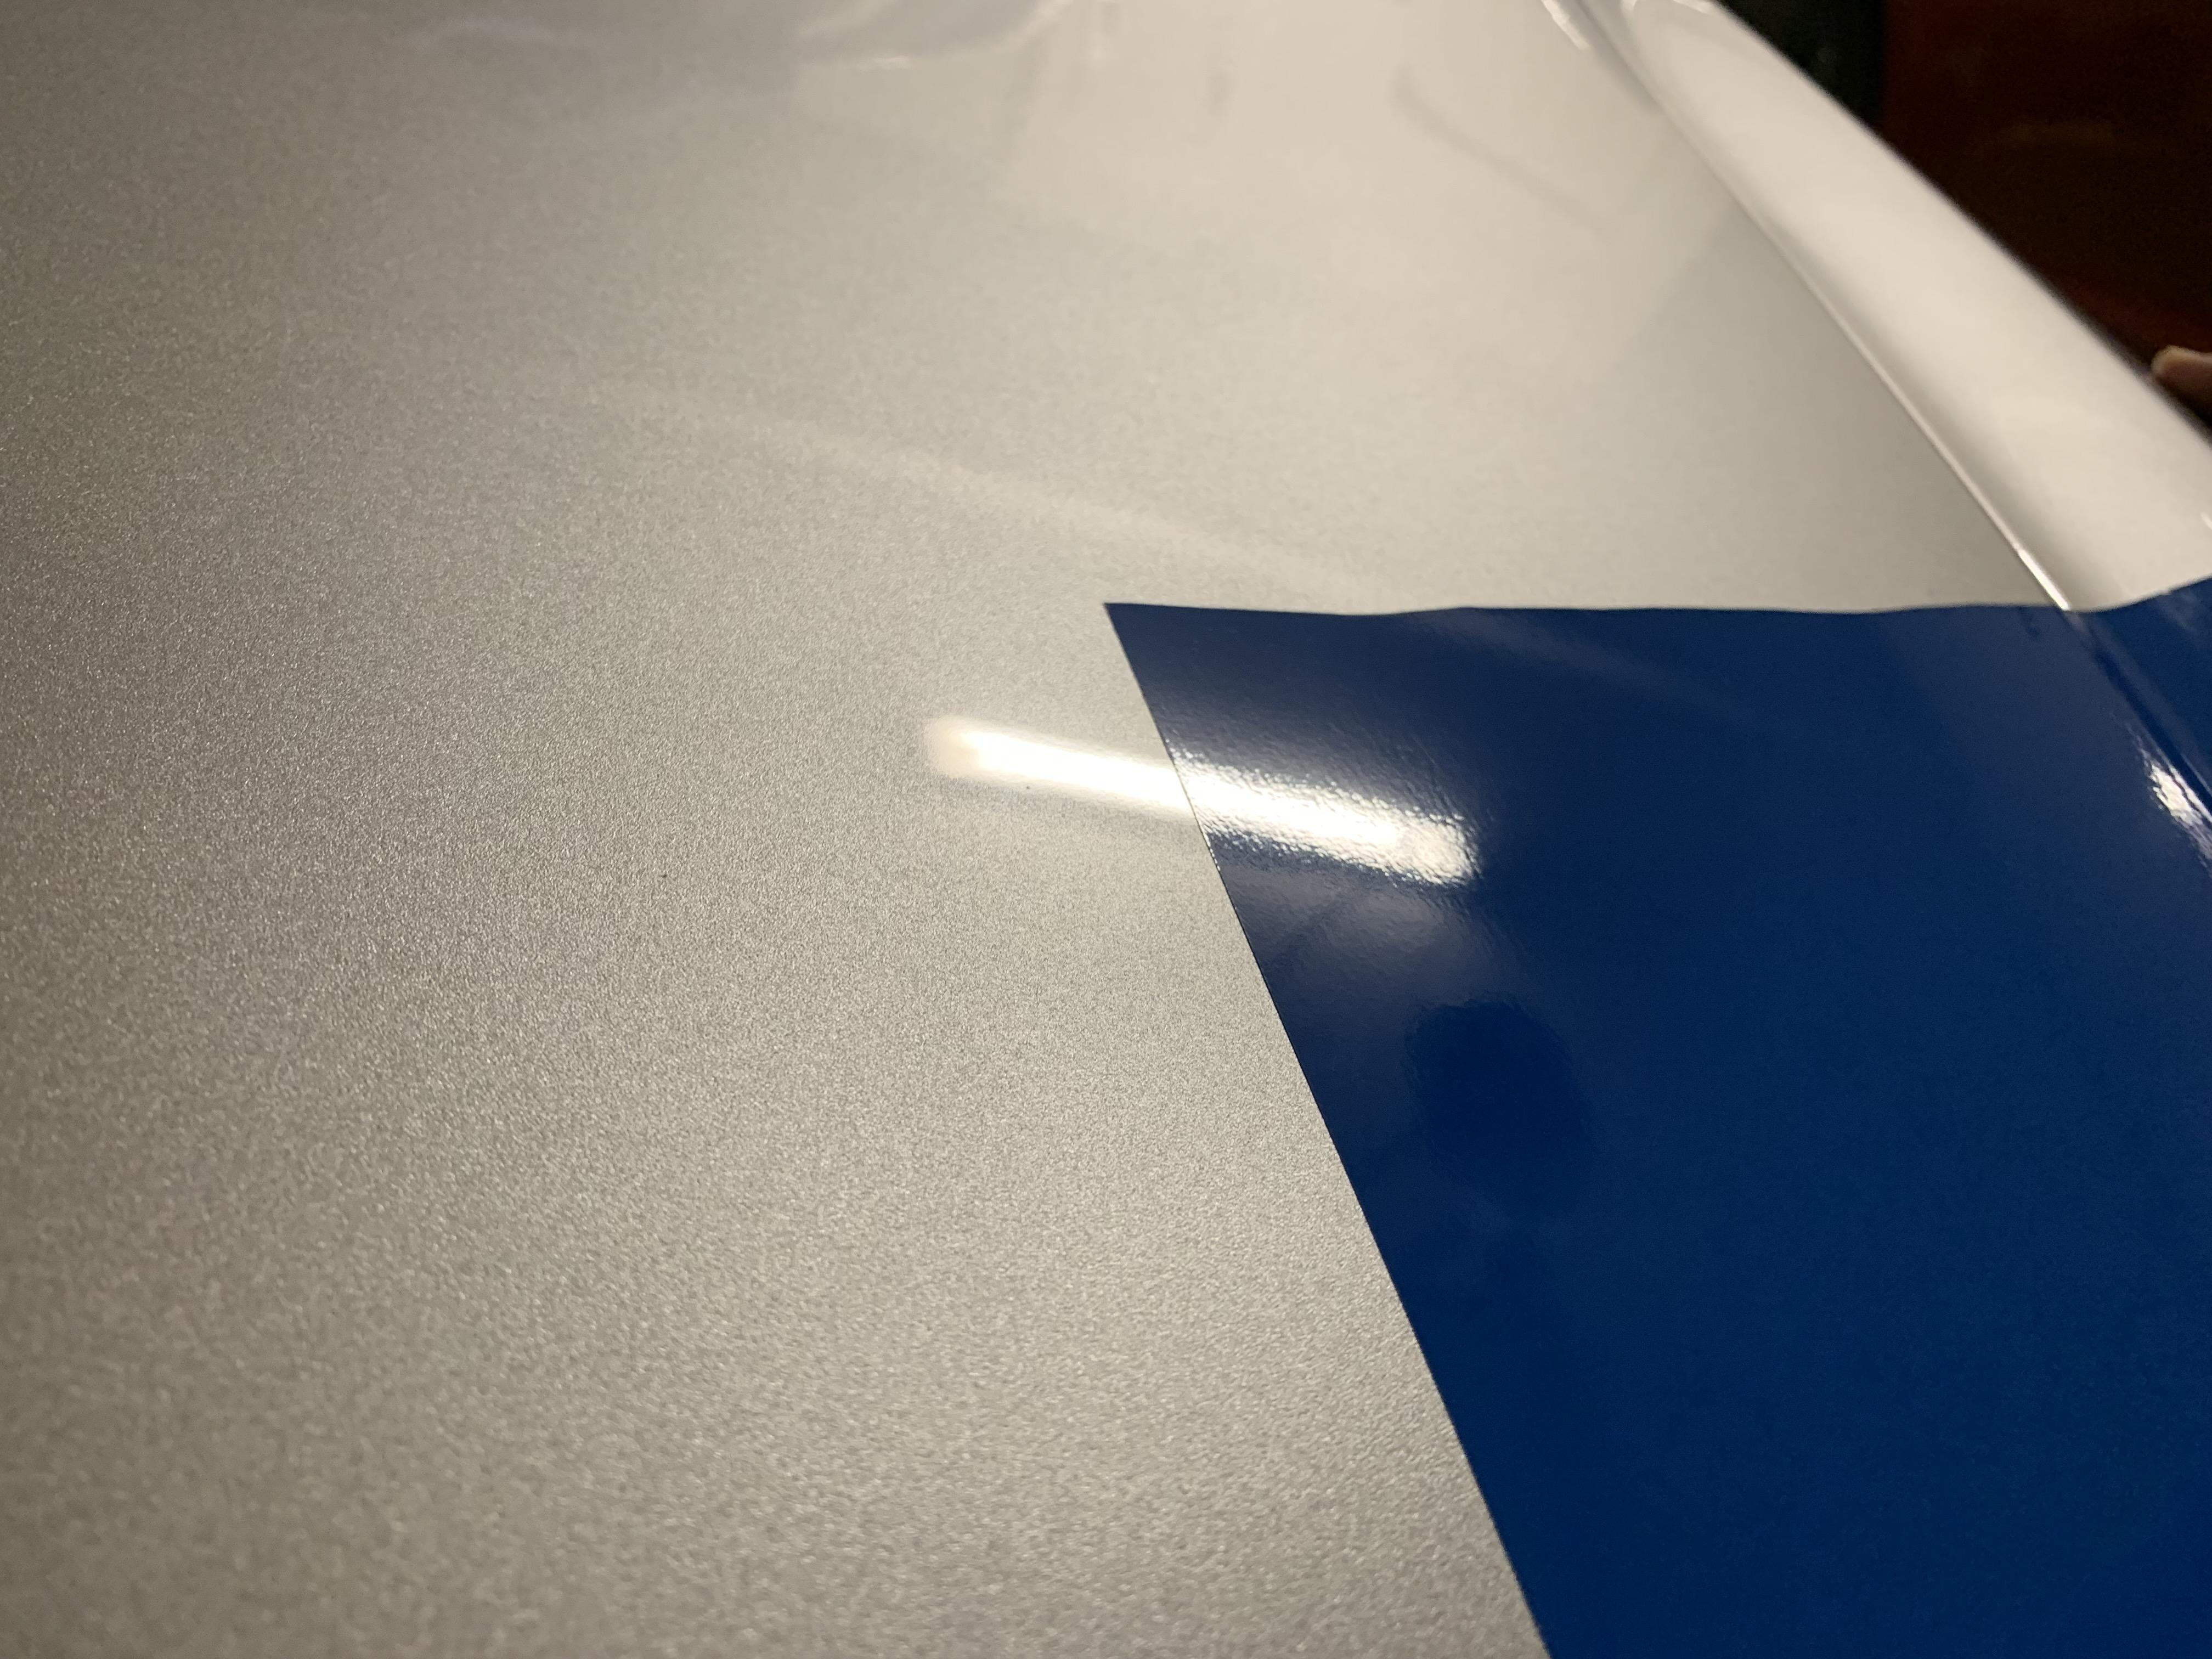 Vinylboden Bad Do All Gloss Vinyl Wrap Finishes Have This Bad Of Texture Avery